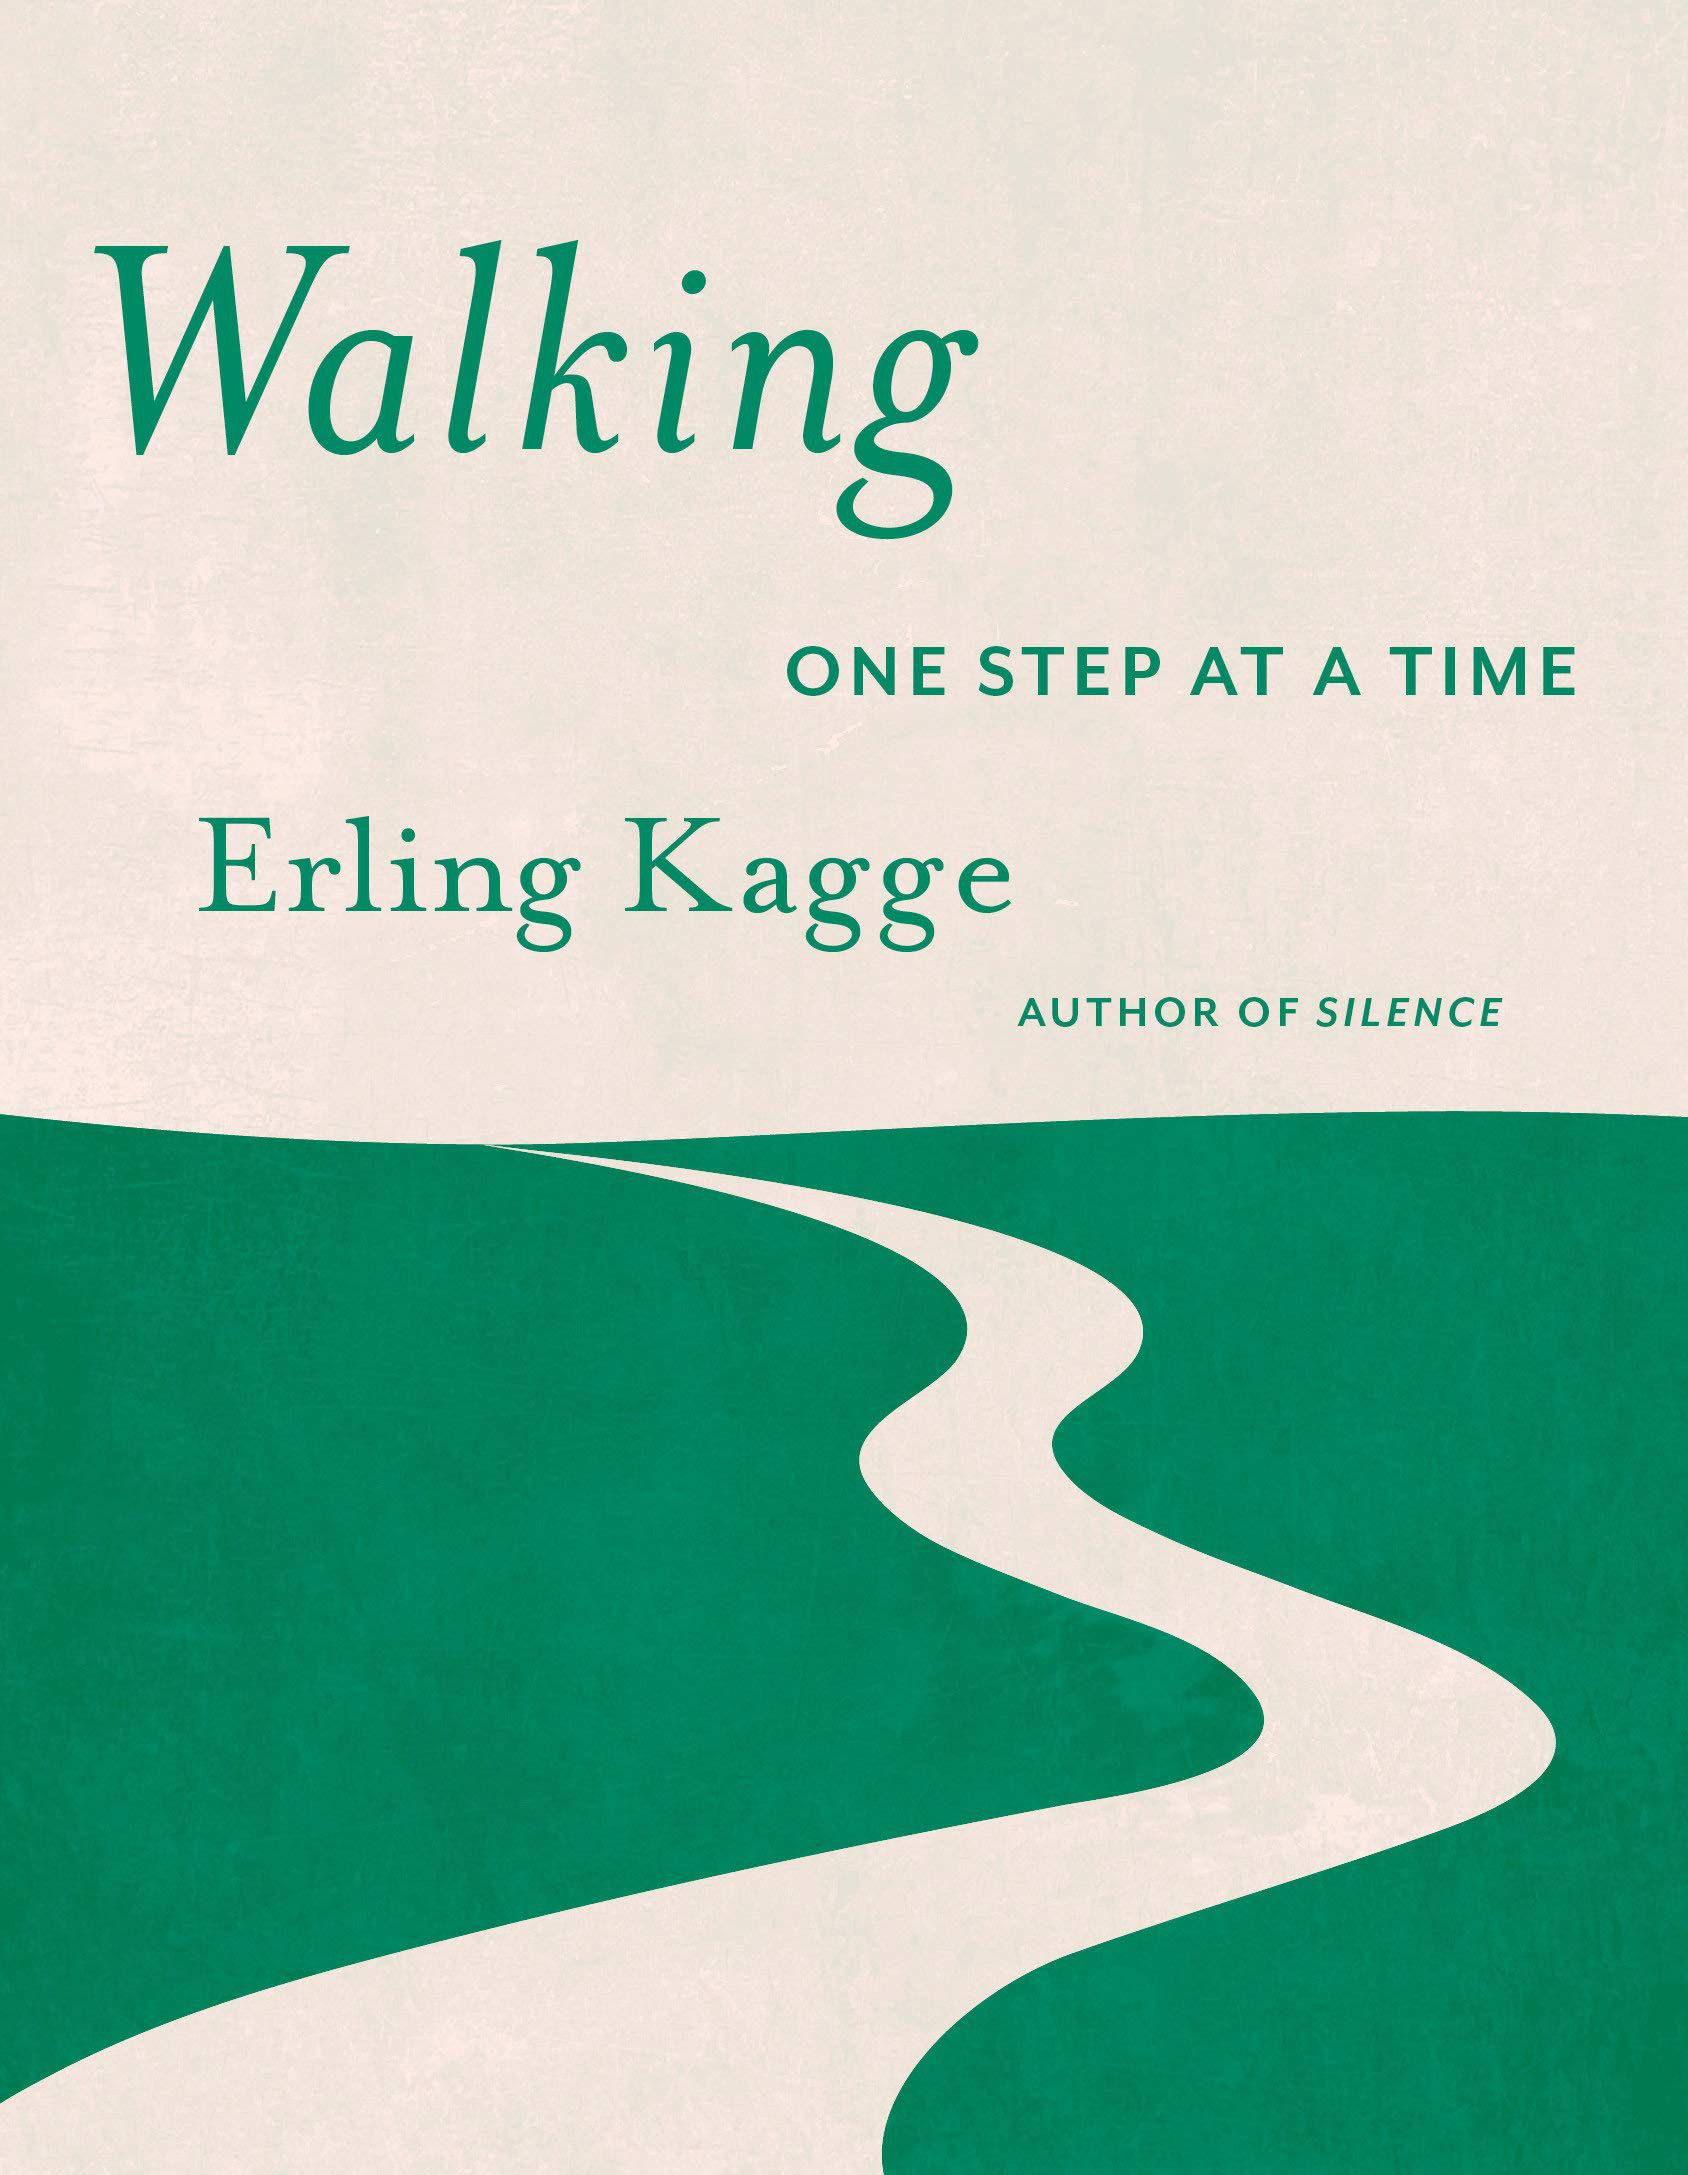 Walking: One Step at a Time book cover